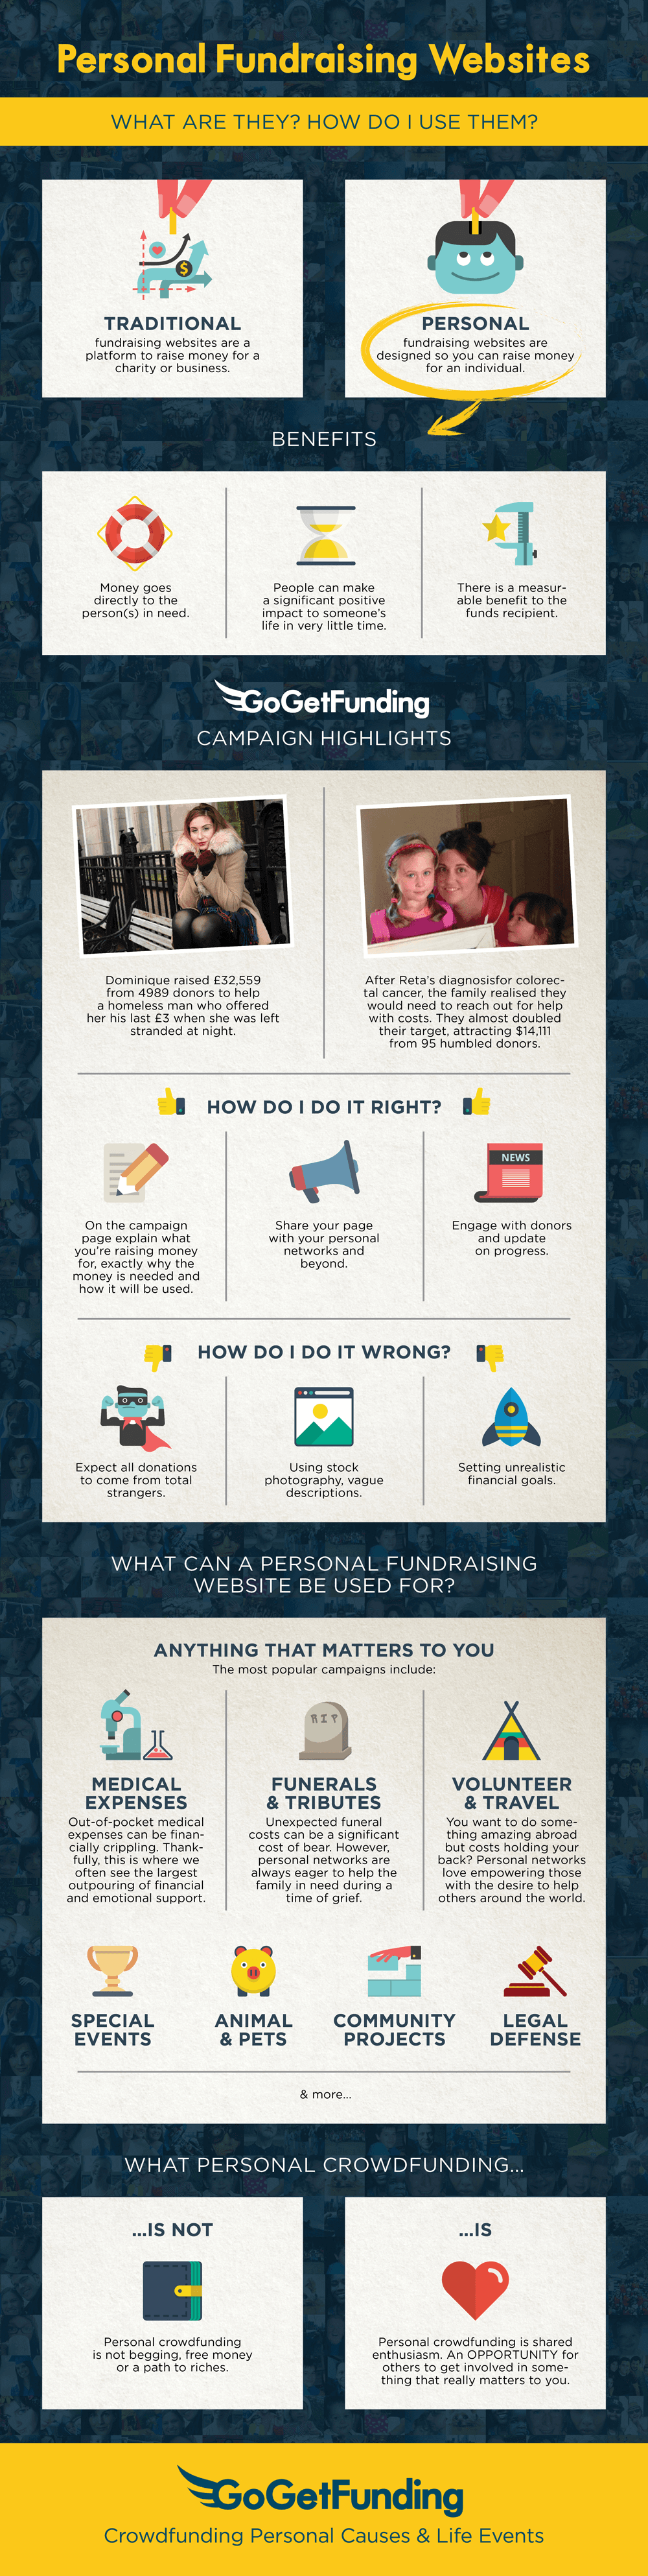 Personal Fundraising Websites – How to Use Them? #infographic